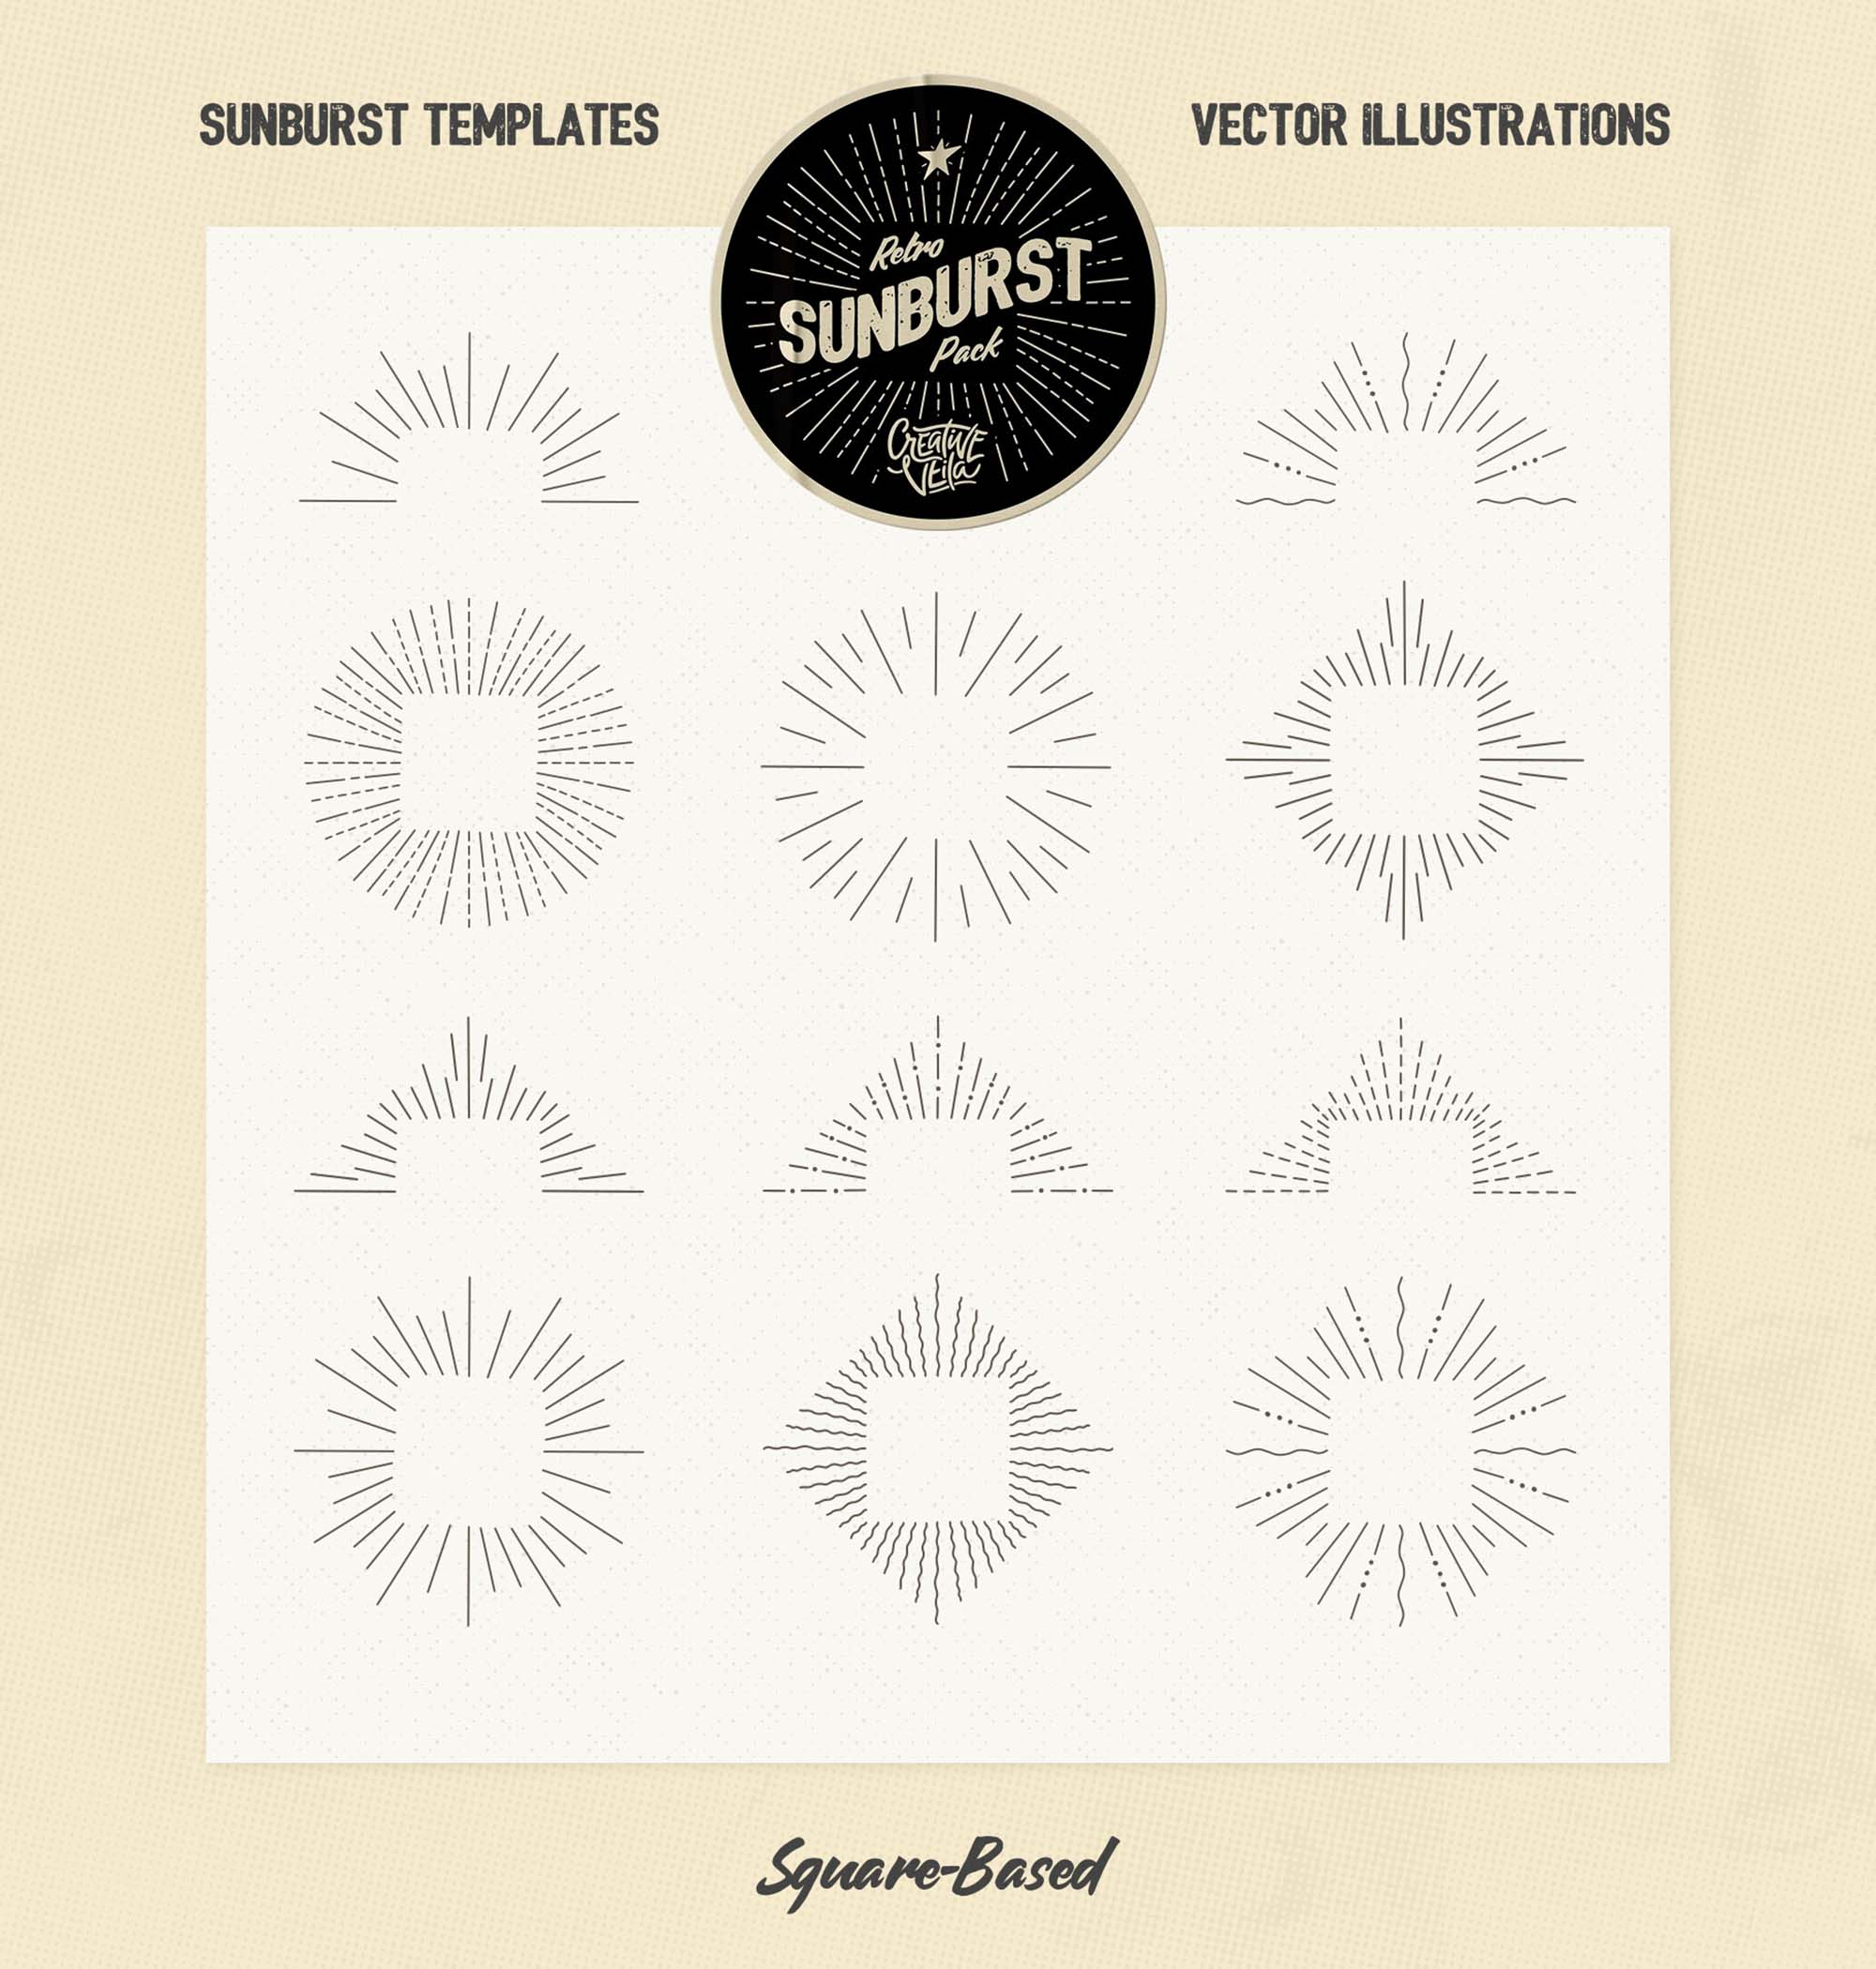 Sunburst Vectors